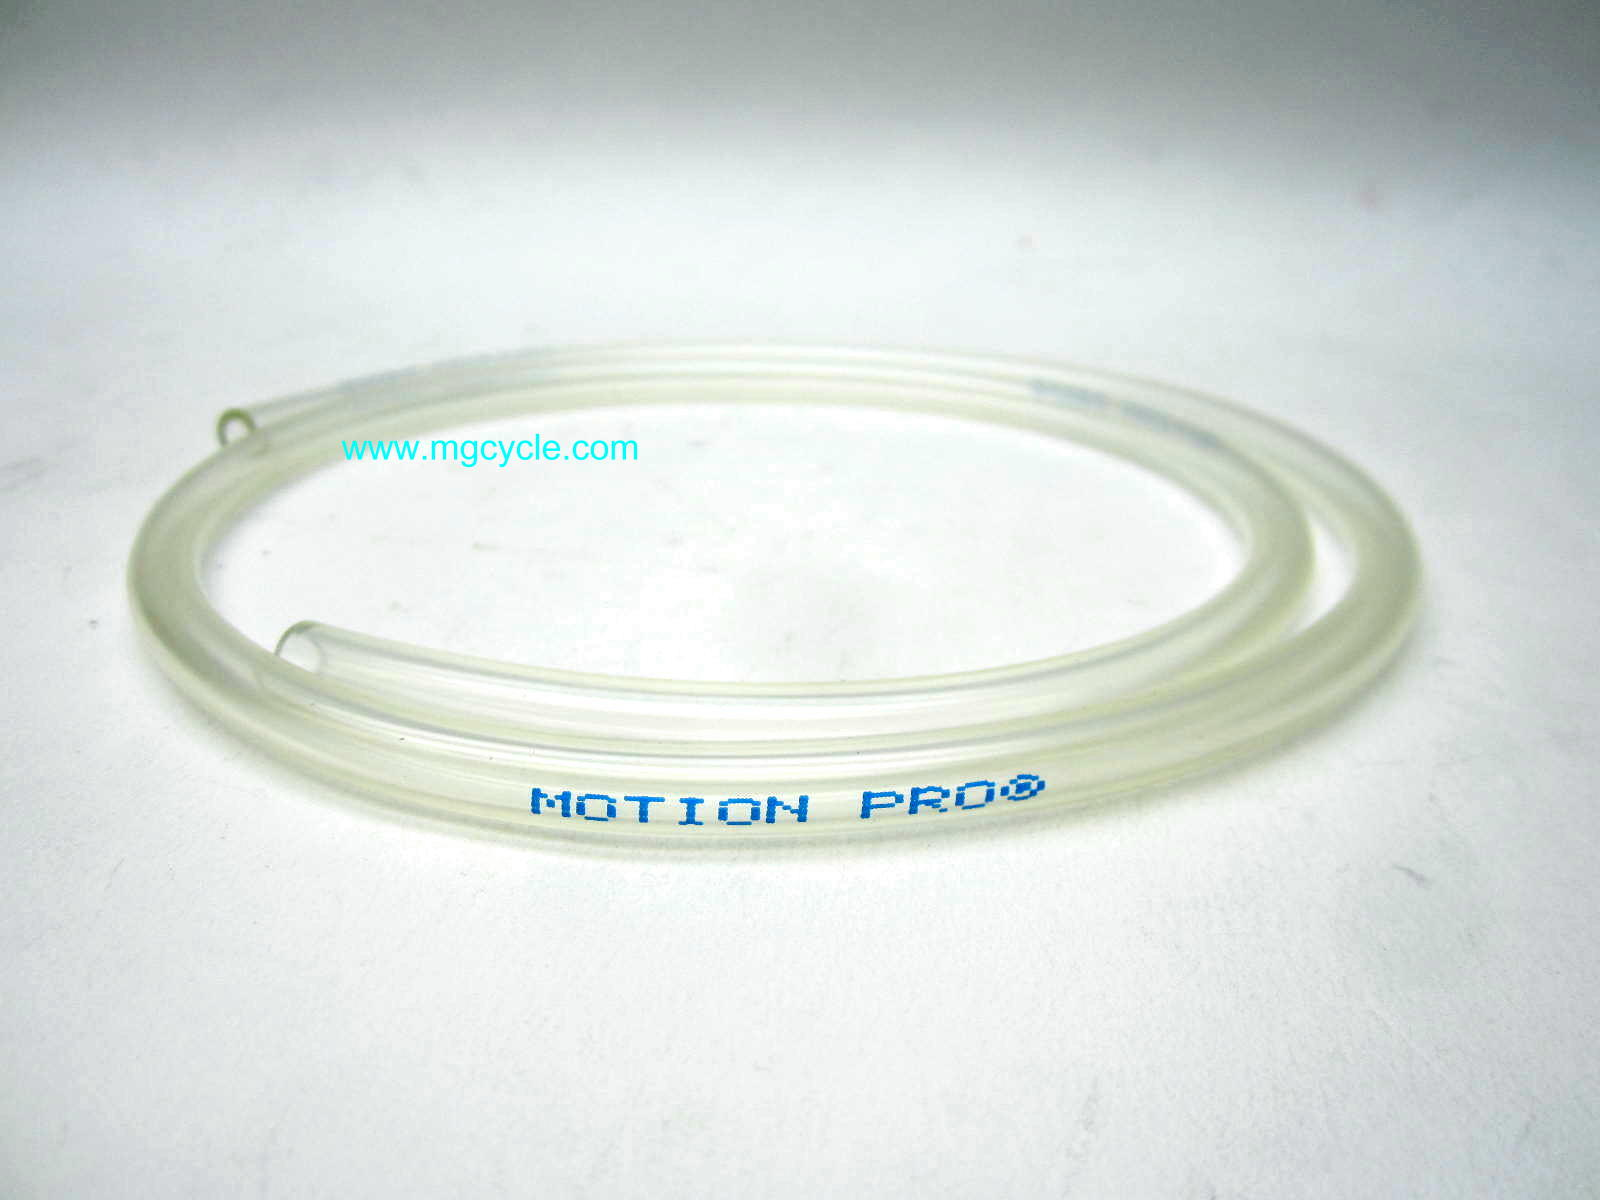 carburetor vent hose ~5.4mm, 3 feet